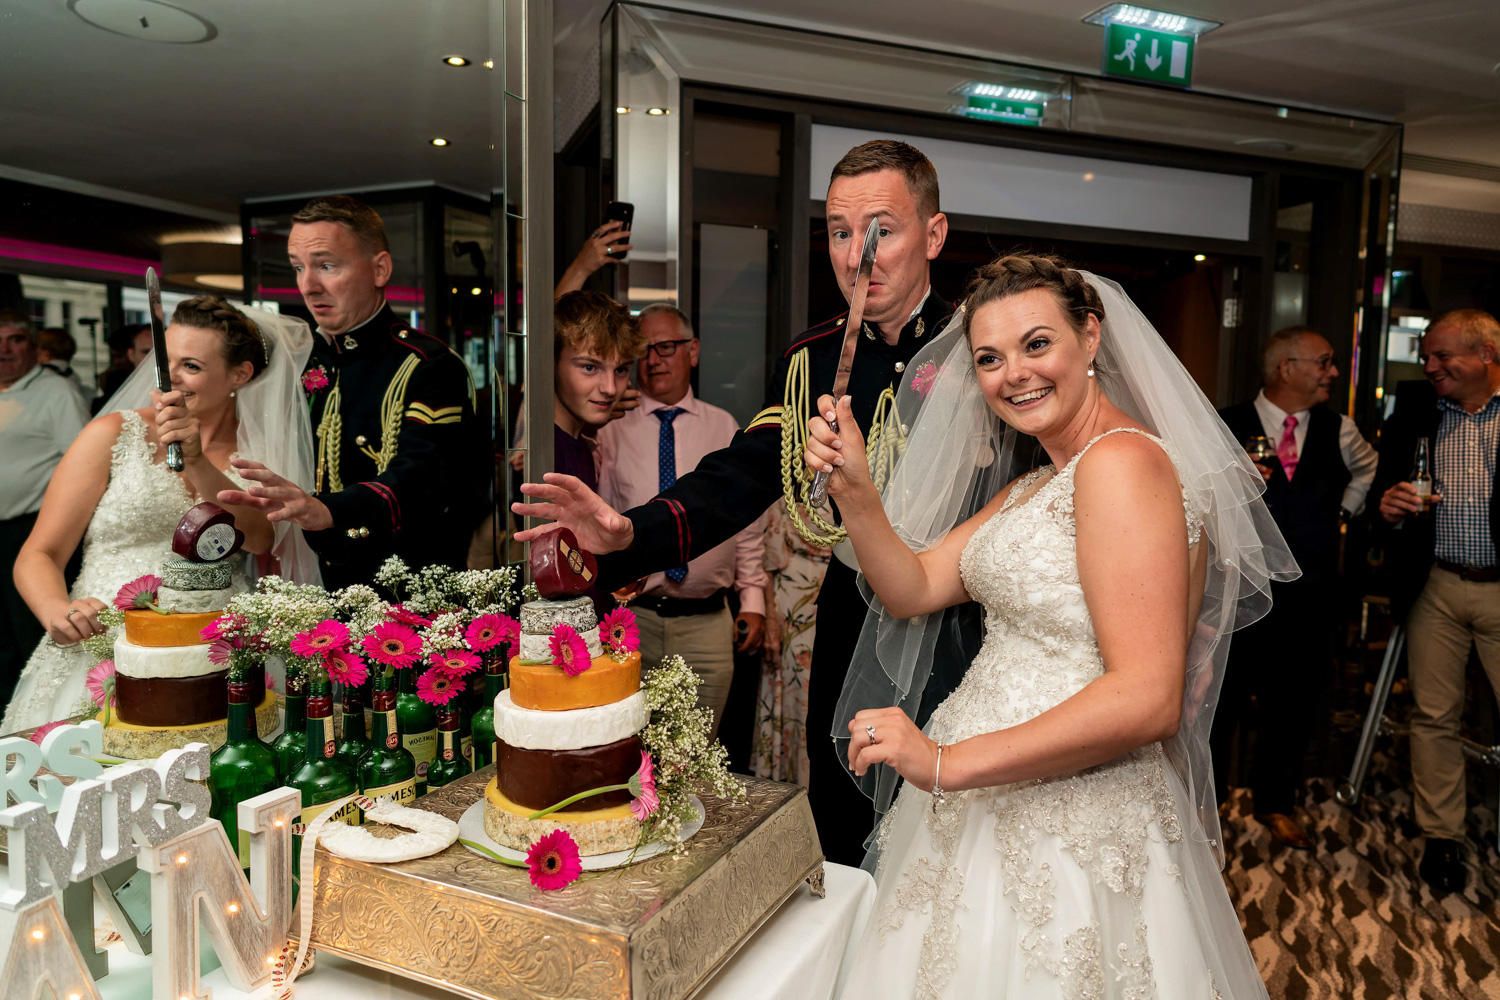 bride-and-groom-cut-cake.jpg